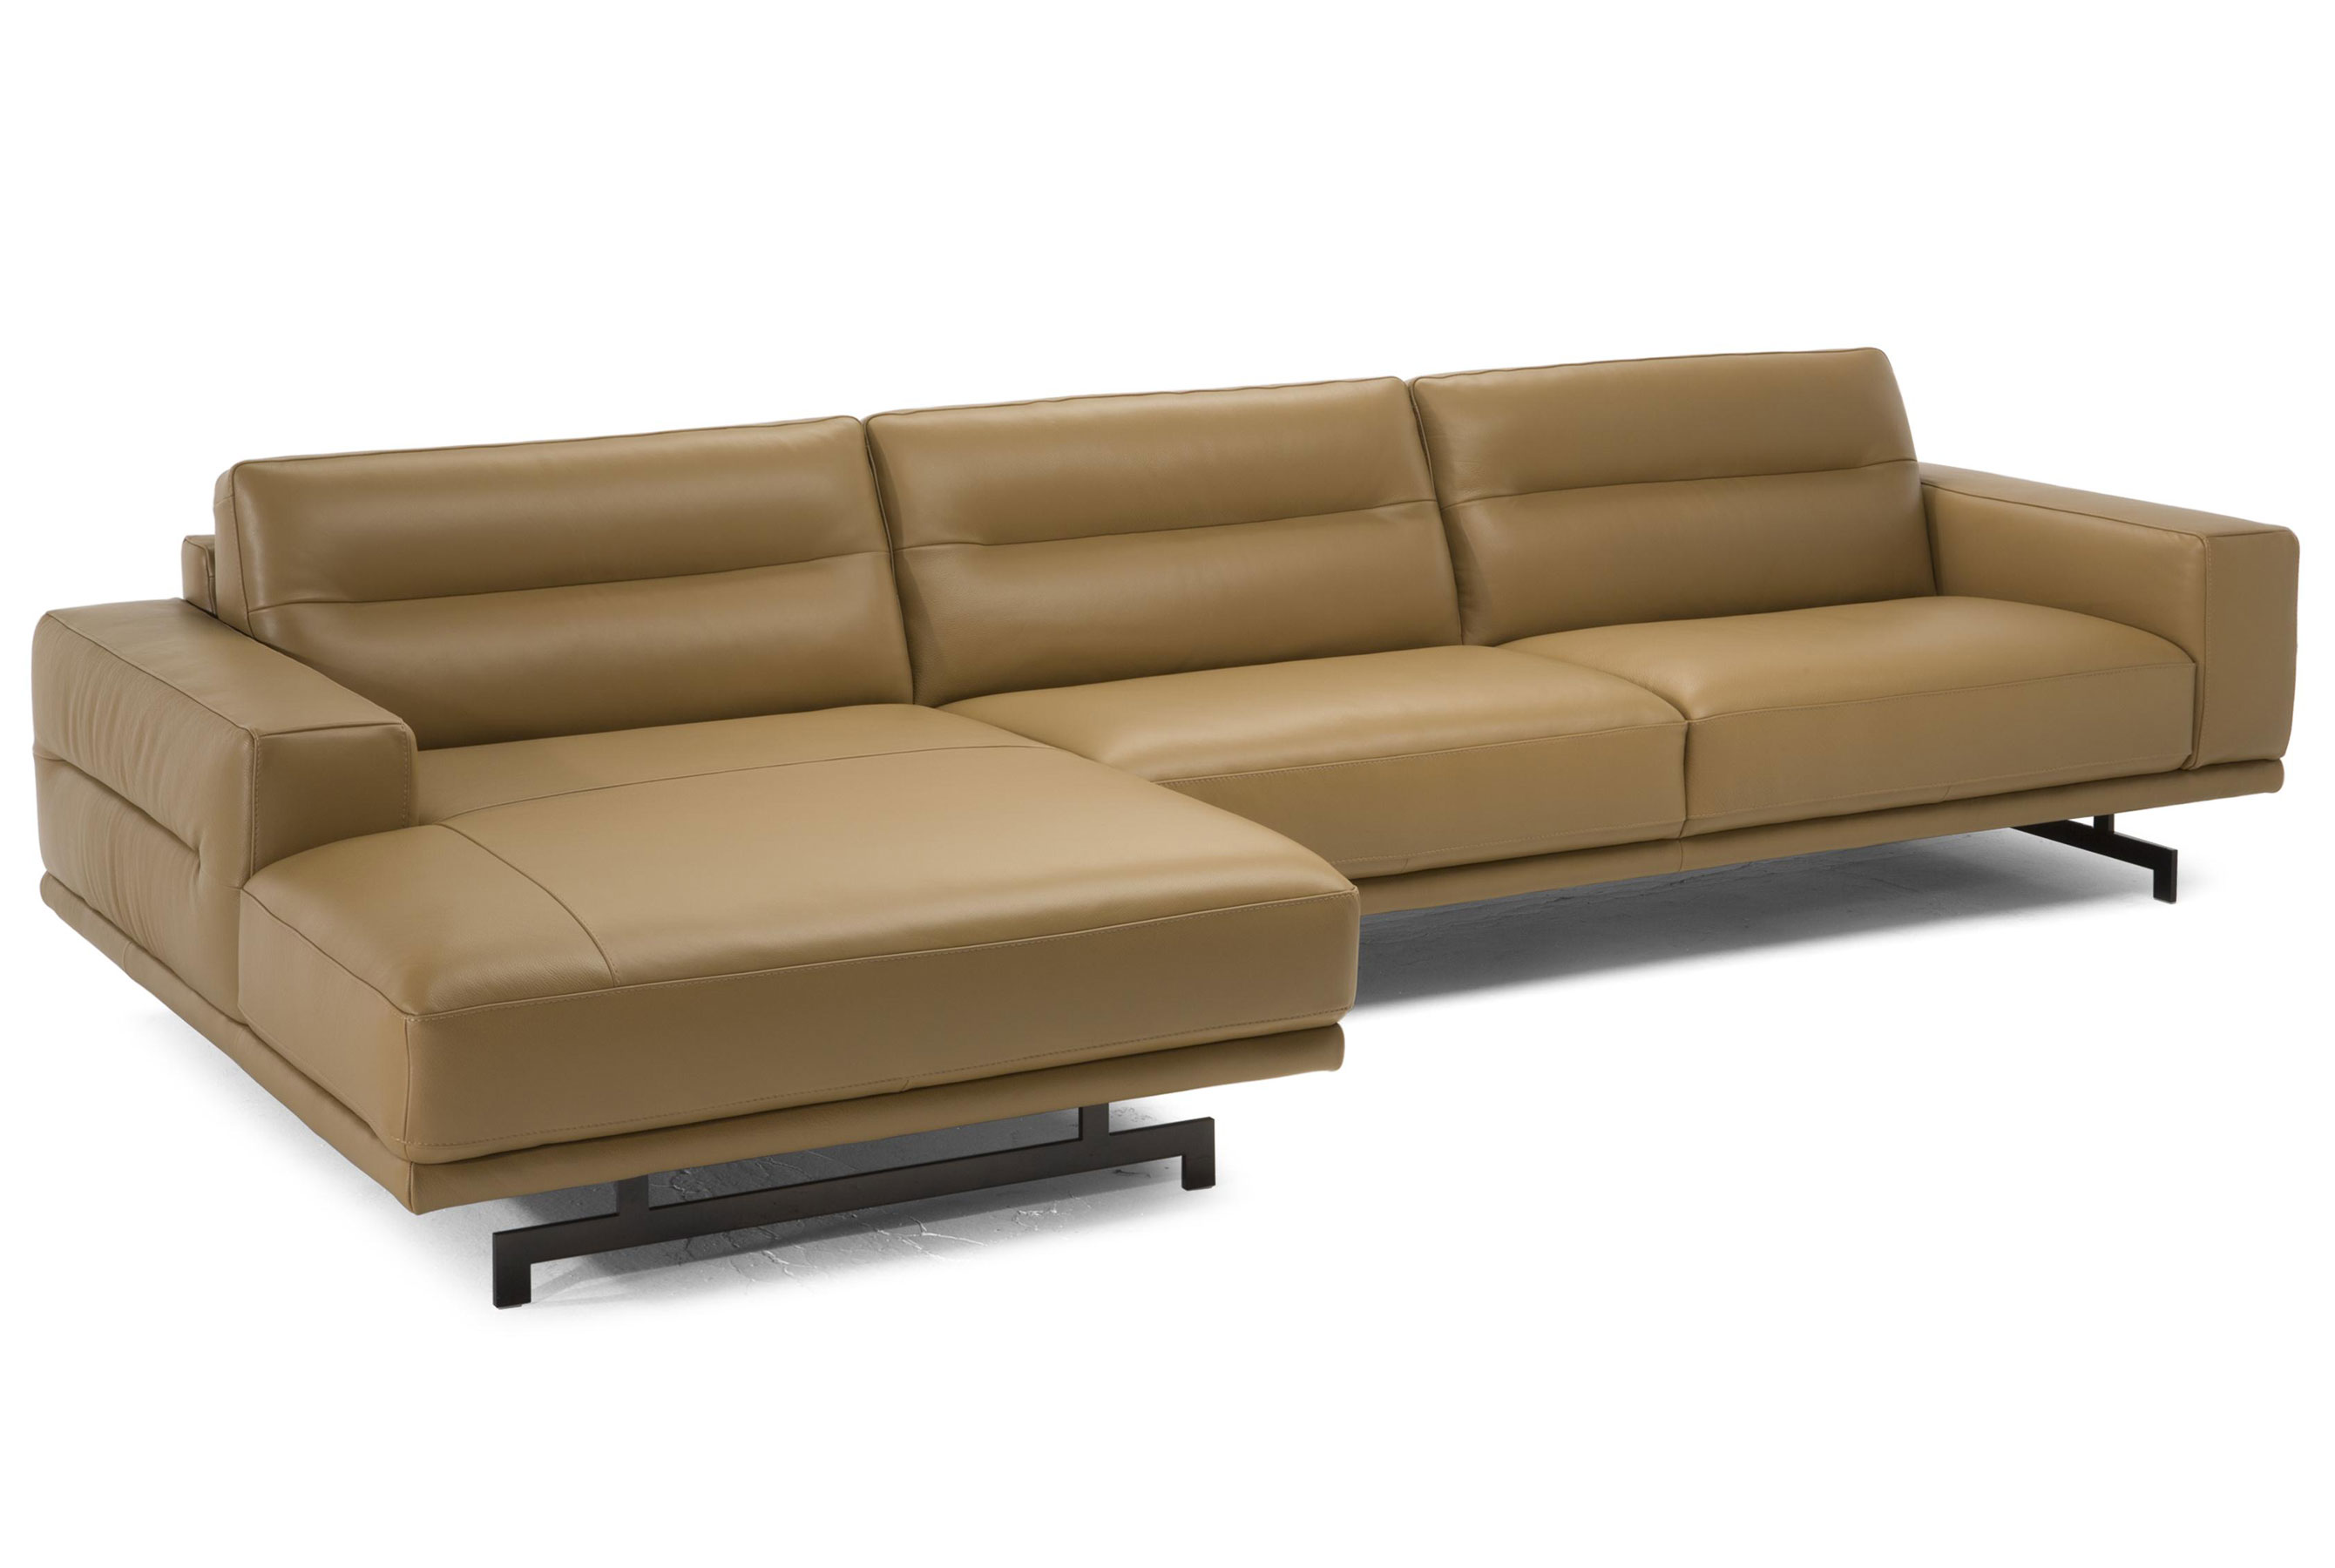 Audacia C018 **100% Top Grain Leather** Sectional (Chaise Left Or Right  Side). By Natuzzi Editions